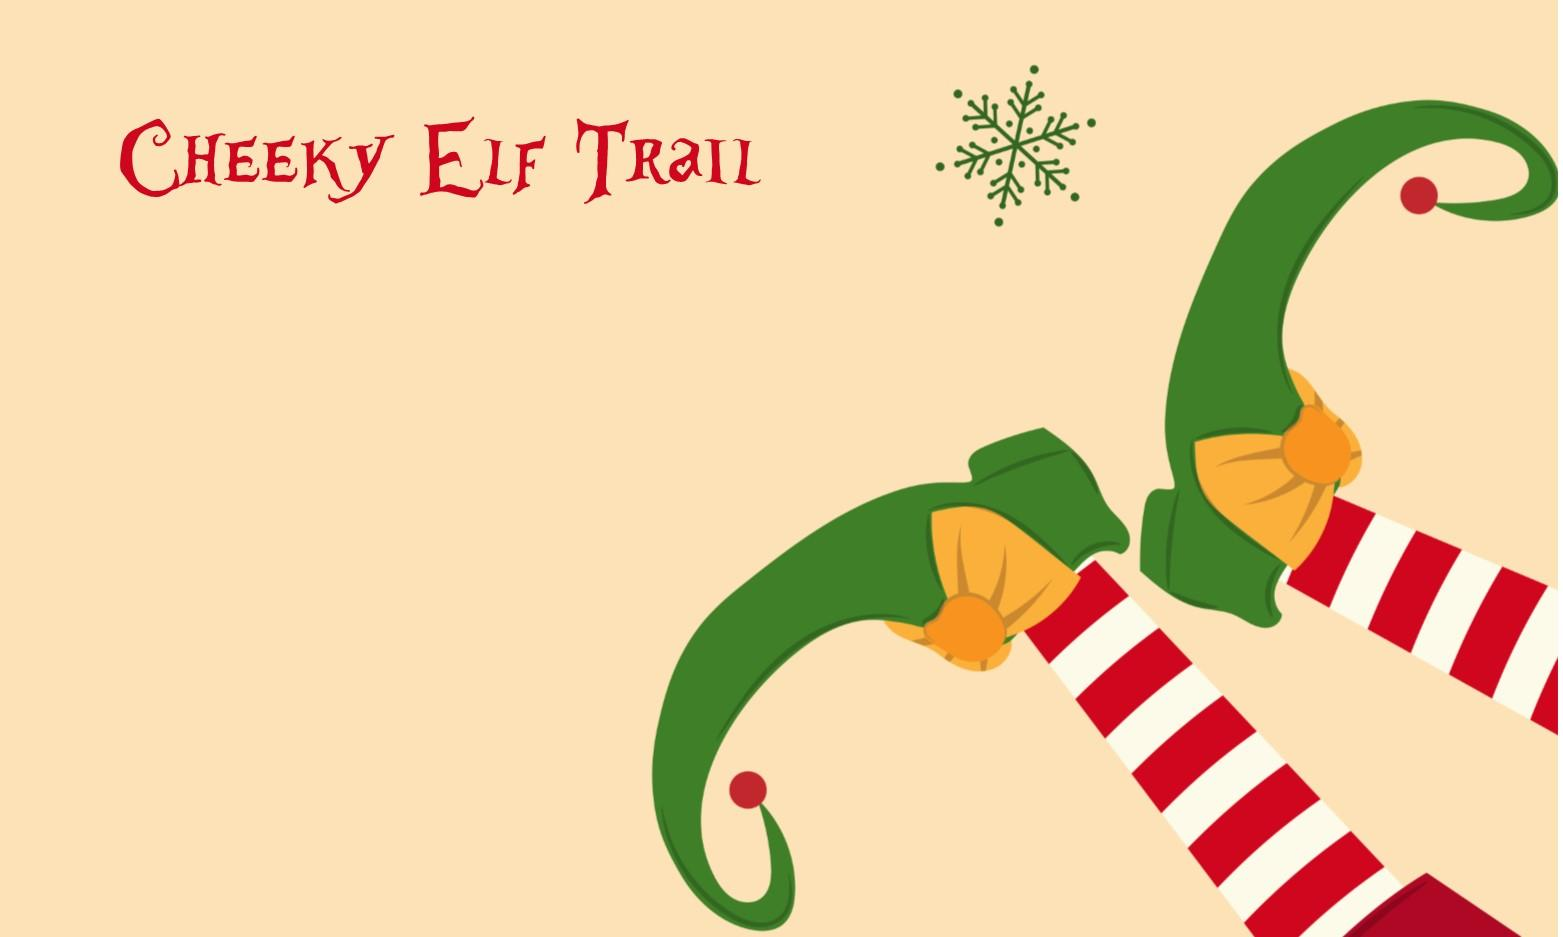 Cheeky Elf Trail at Swansea Waterfront Museum